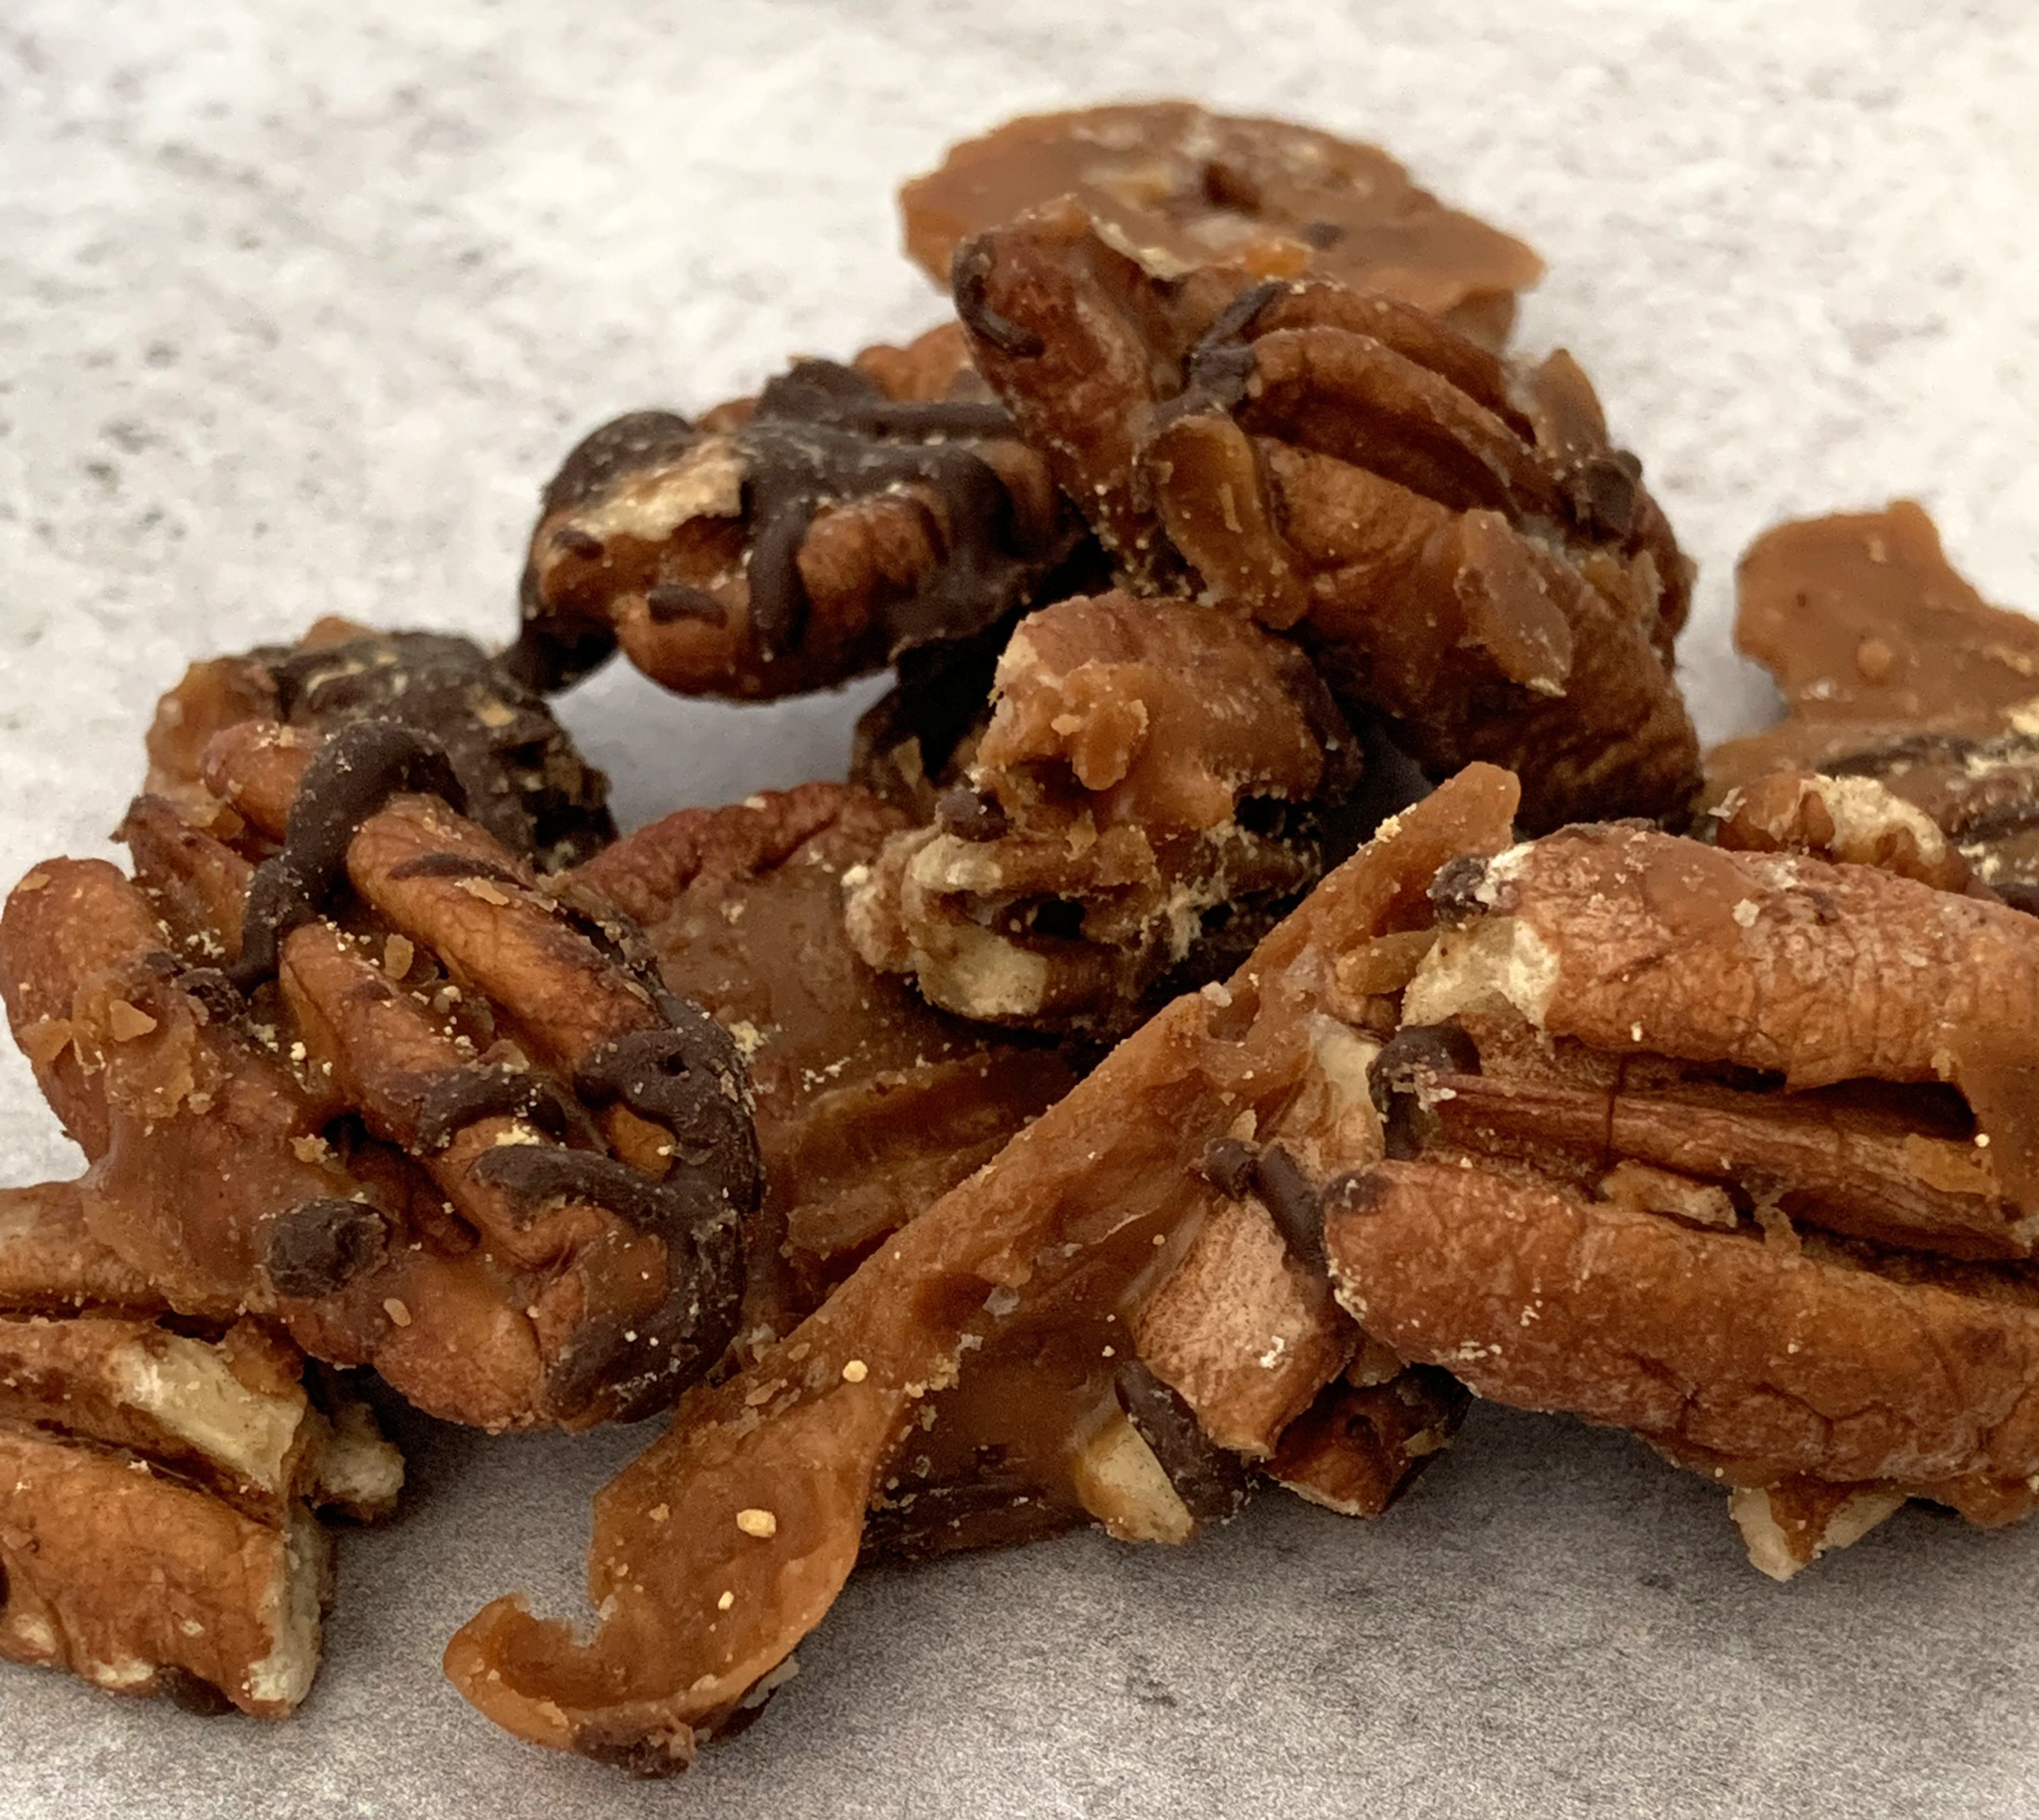 Chocolate Peanut Butter Toffee Krunchies